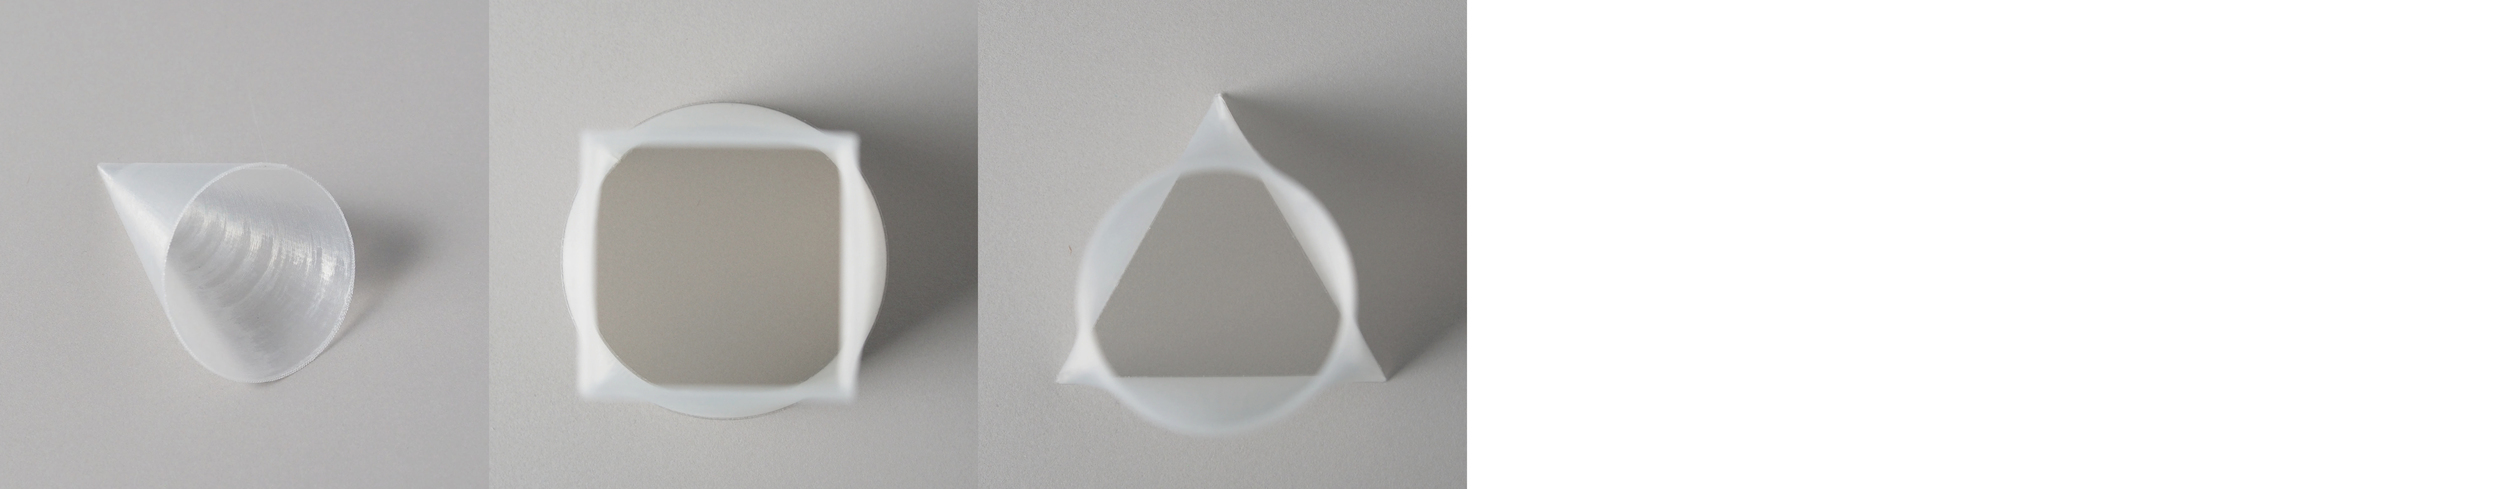 "Form study: Hollow   Series   Size: 4"" x 4""    Material: PLA"